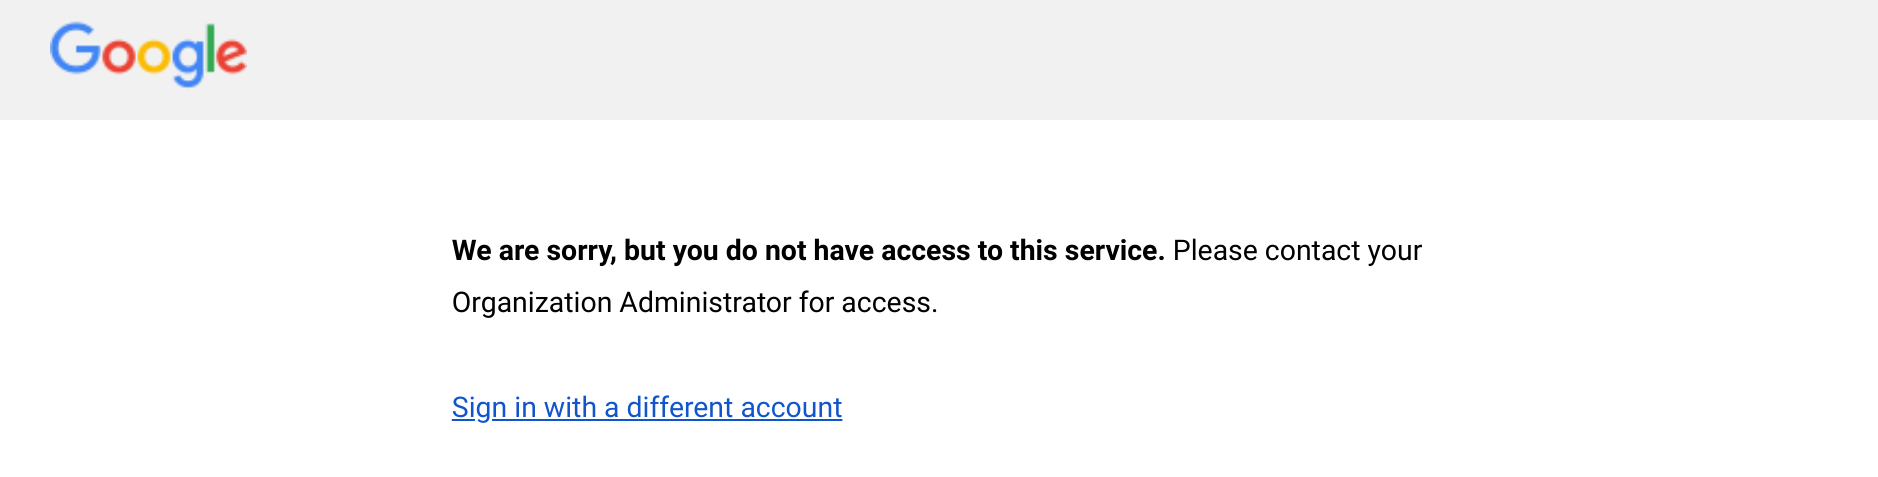 "Google error message that reads:  ""We are sorry, but you do not have access to this service. Please contact your Organization Administrator for access.  Sign in with a different account"""